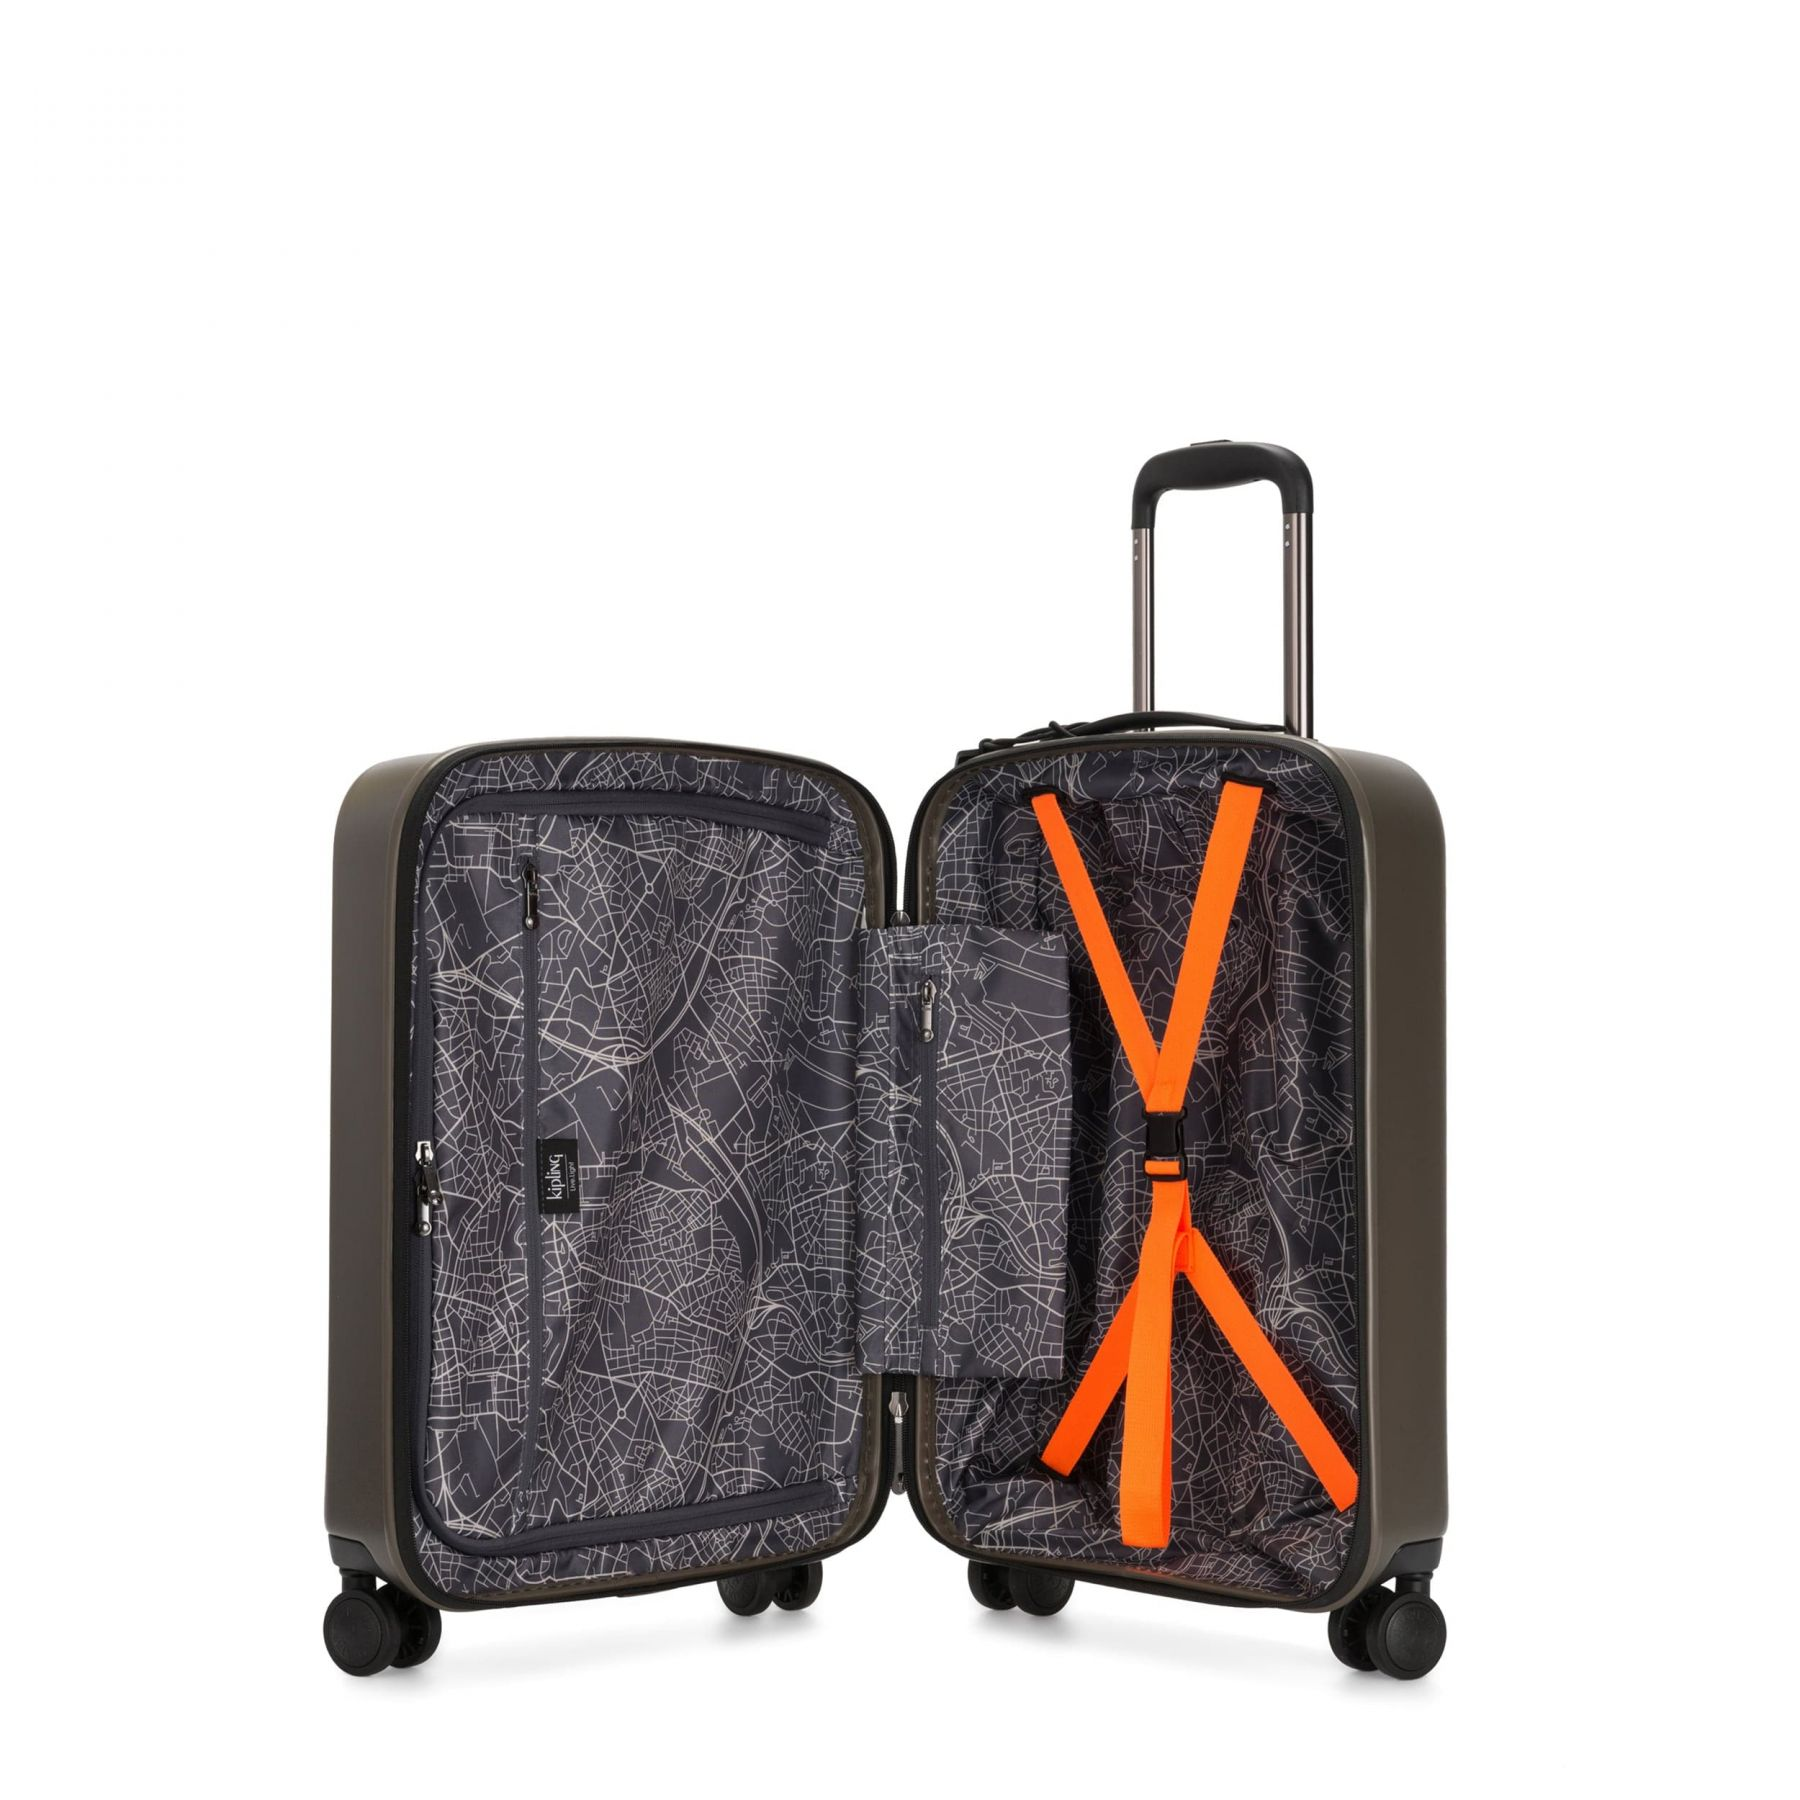 CURIOSITY S Latest Luggage by Kipling - Inside view